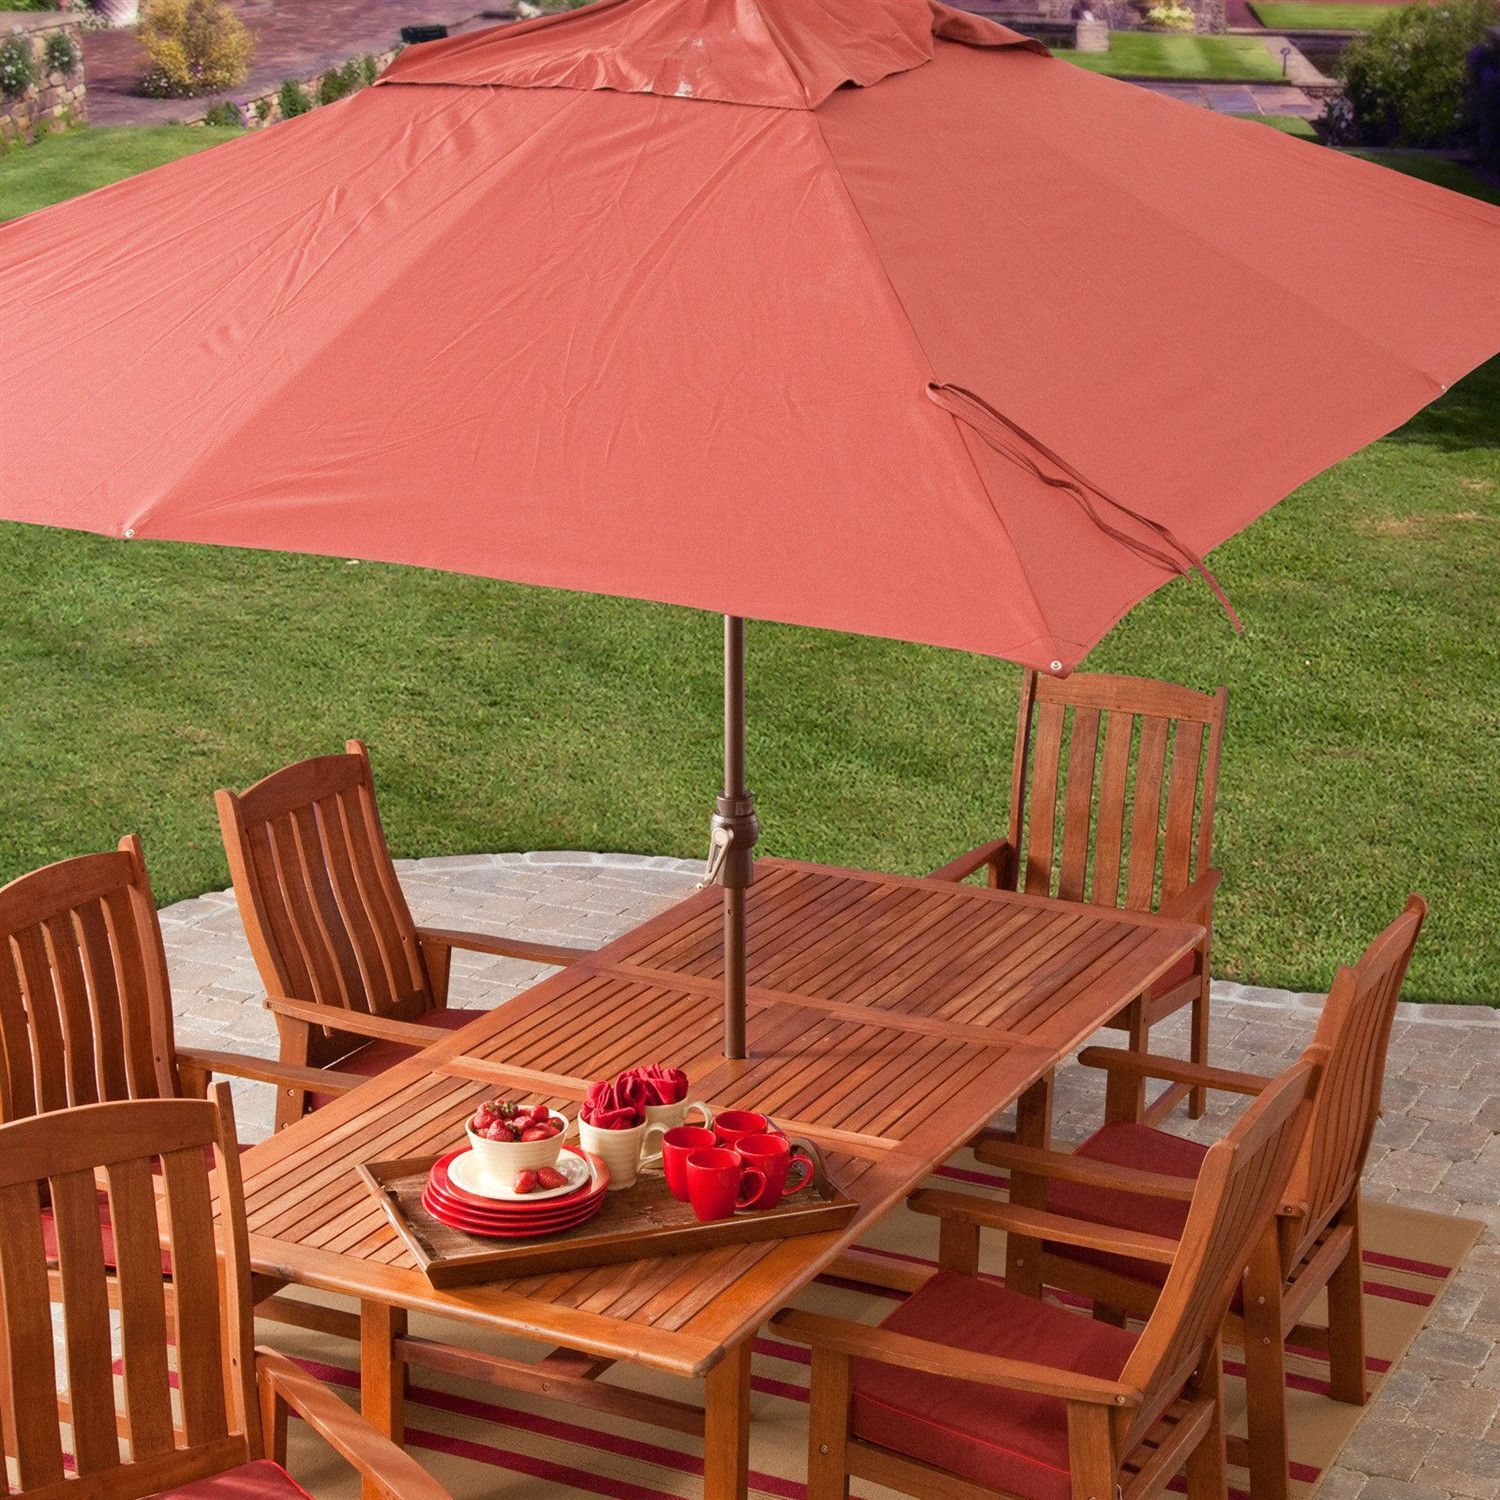 8 X 11 Ft Rectangle Patio Umbrella With Red Orange Terracotta Canopy Shade